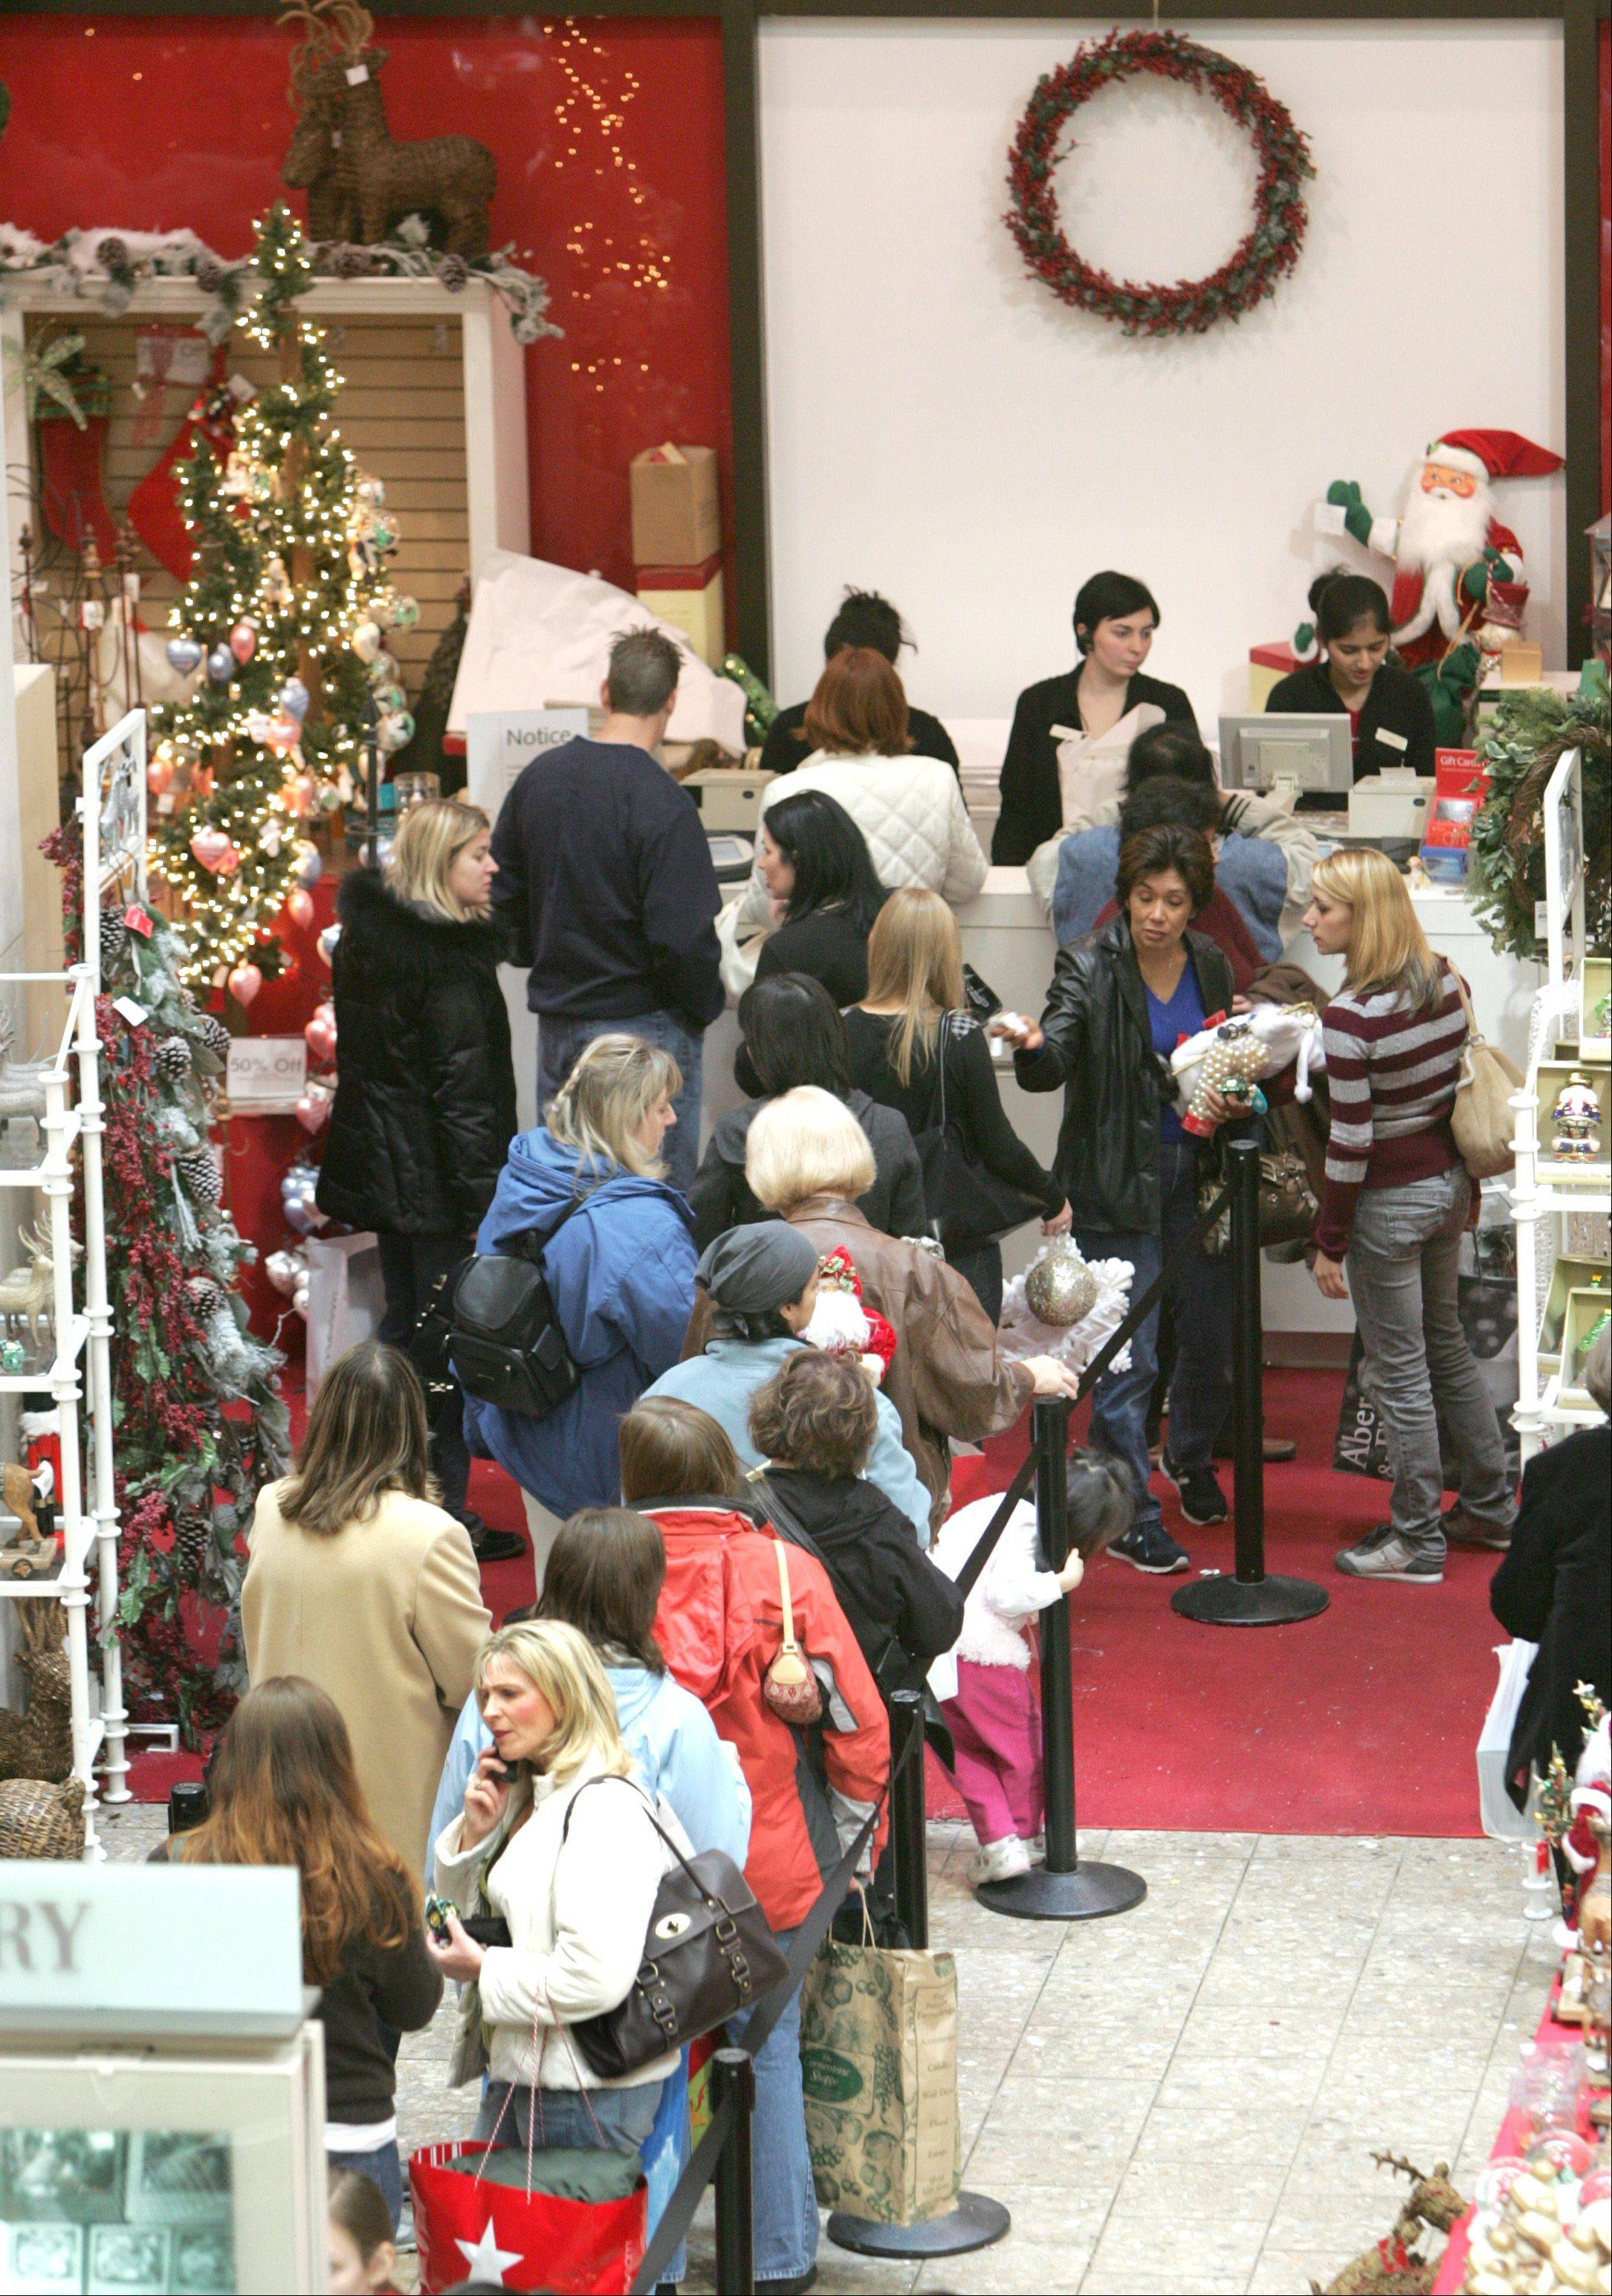 Retail revenue in November and December should rise 2.4 percent during the biggest shopping period of the year, Chicago-based research firm ShopperTrak said Tuesday.